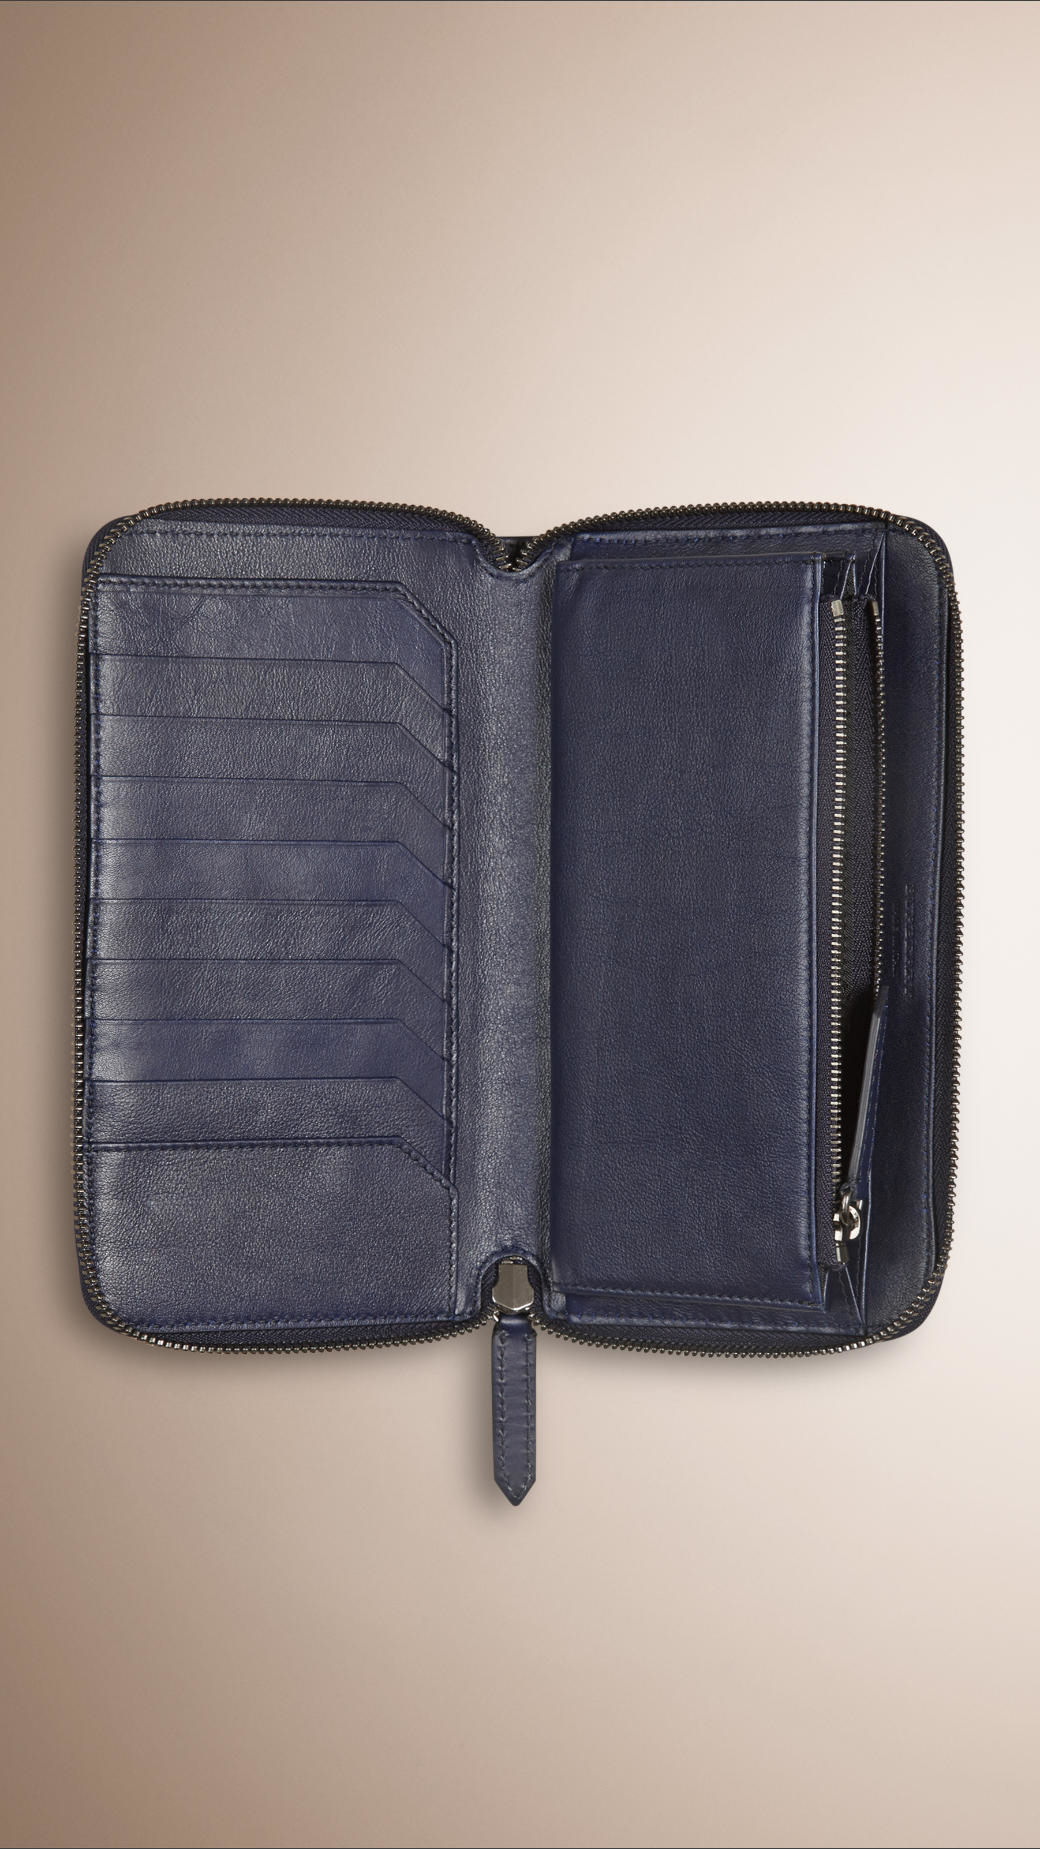 11007f9cee8 Lyst - Burberry Horseferry Check Ziparound Wallet Blue Carbon in ...